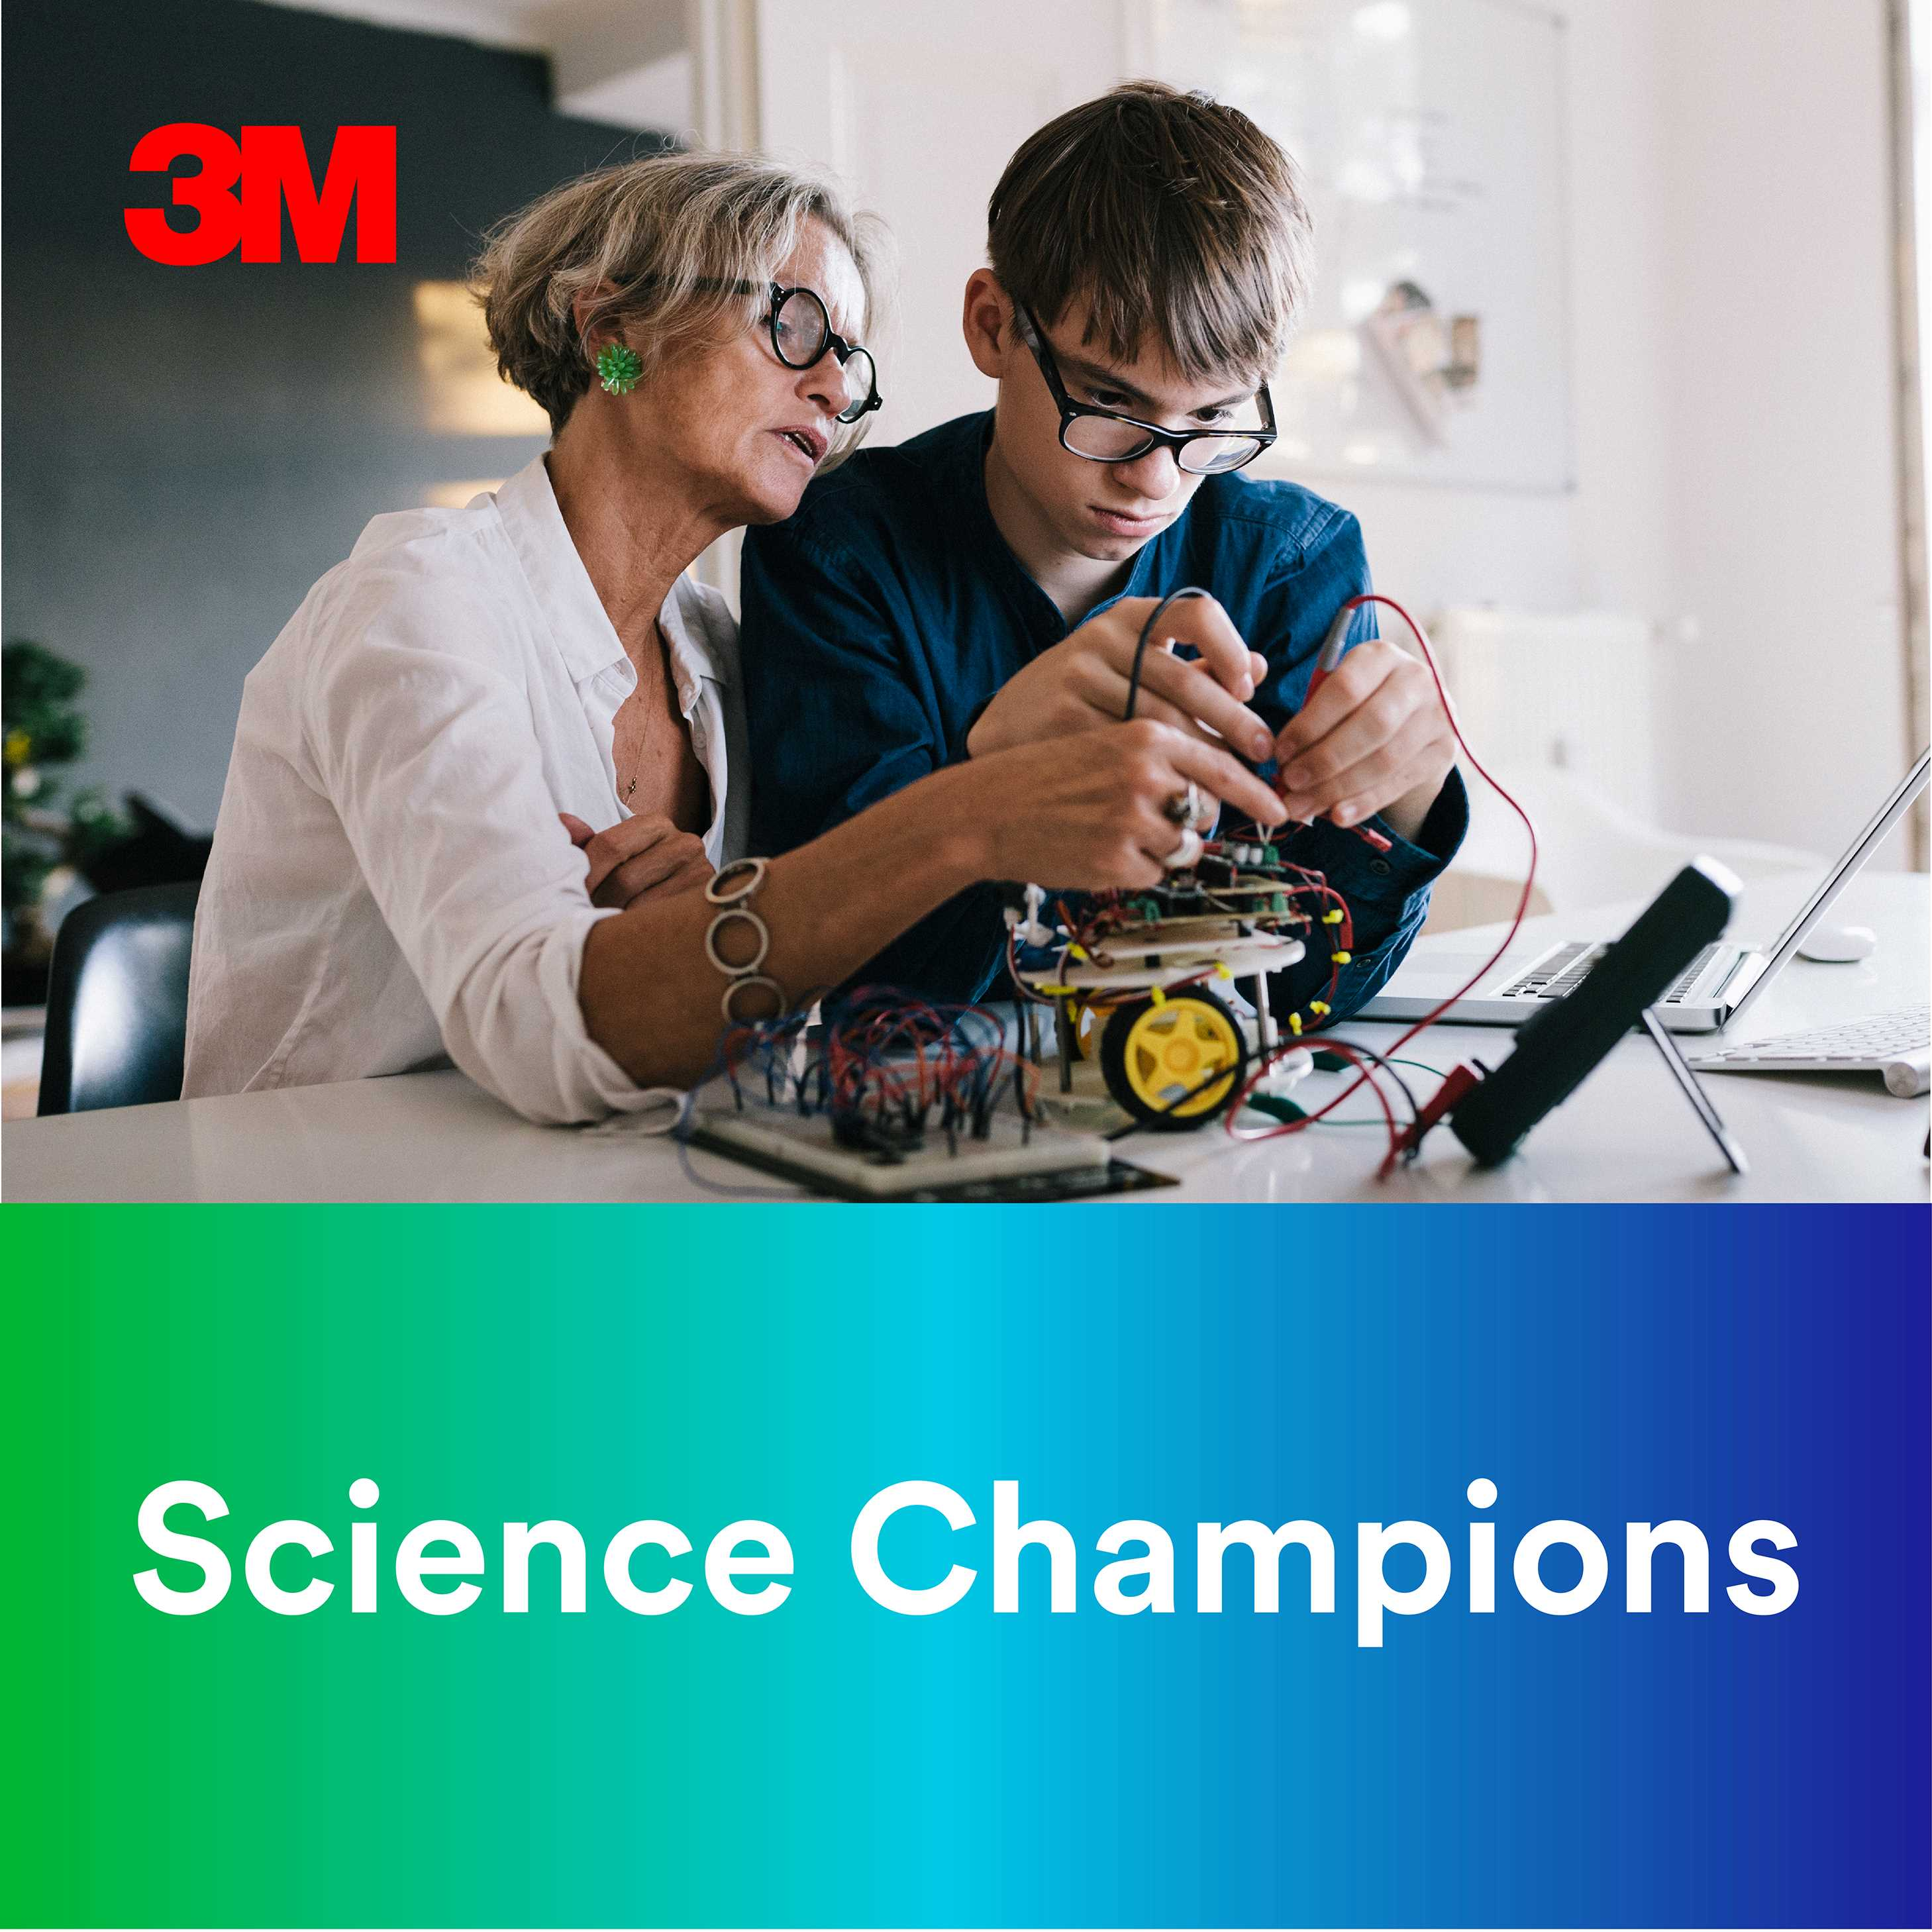 Science Champions show art